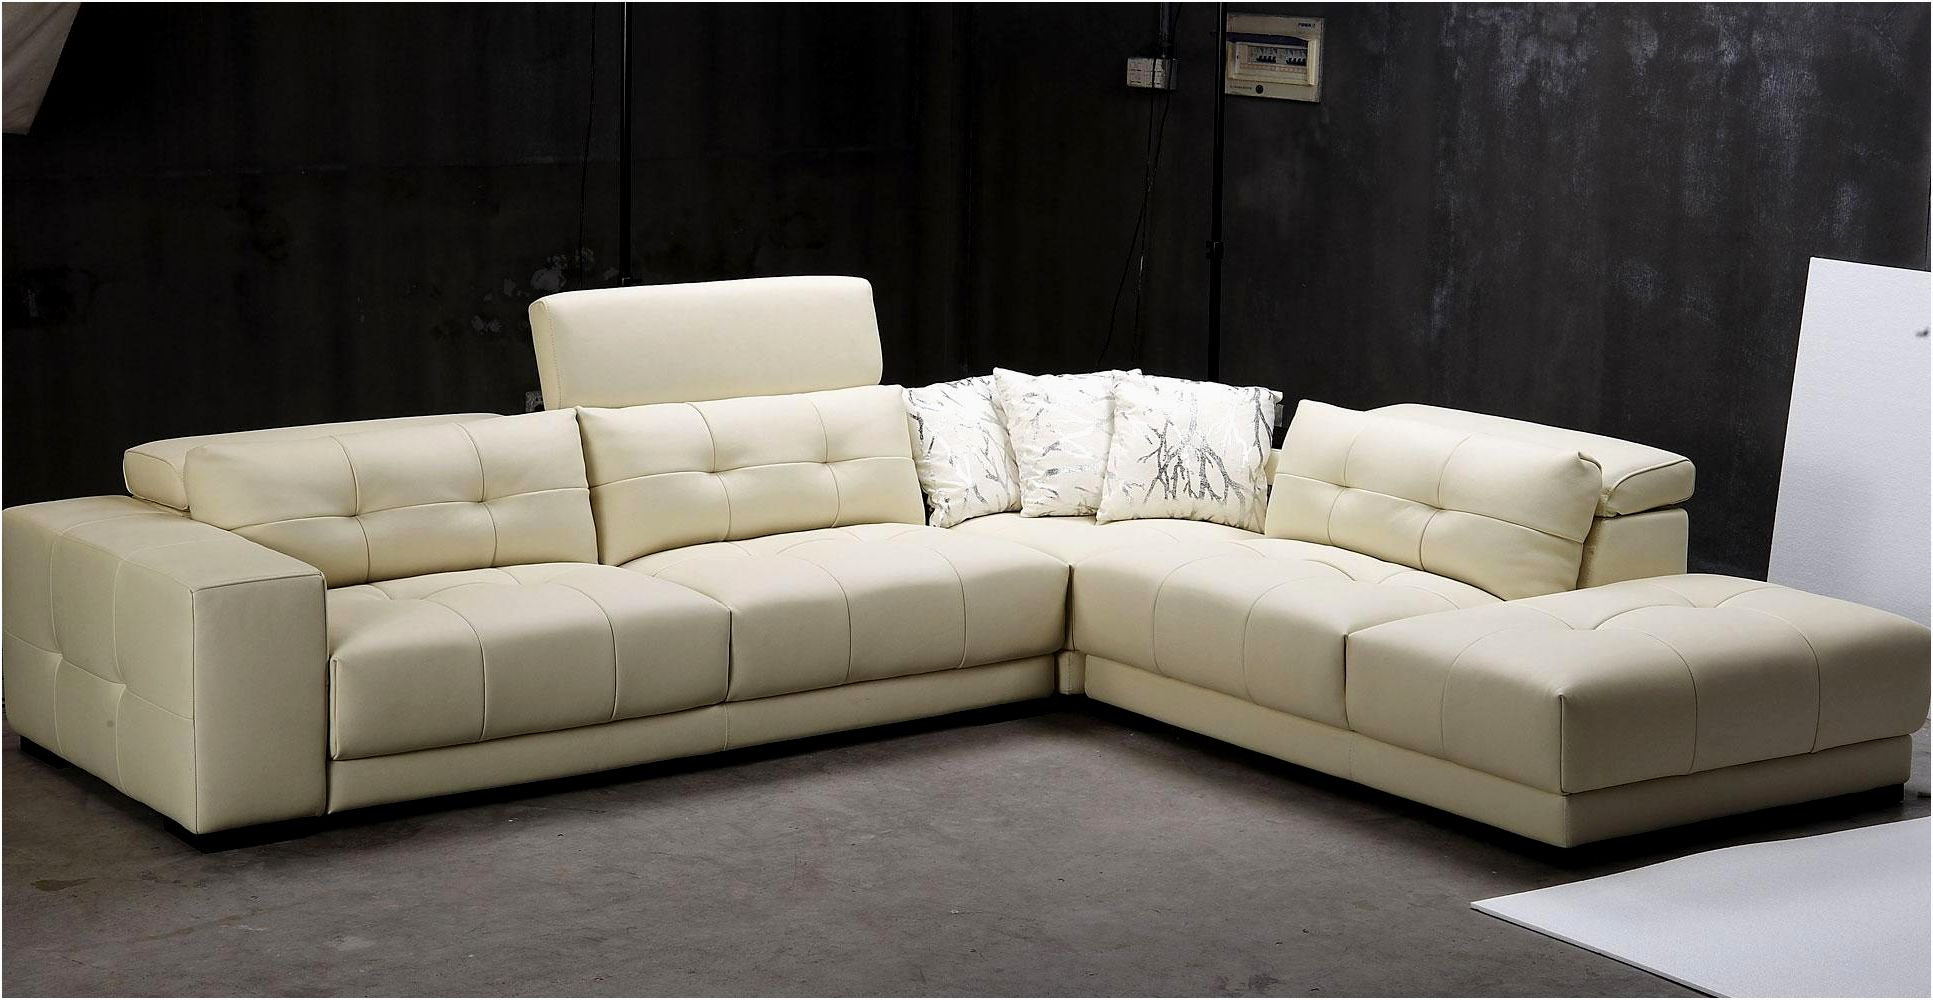 fresh sofas under 300 decoration-Finest sofas Under 300 Gallery